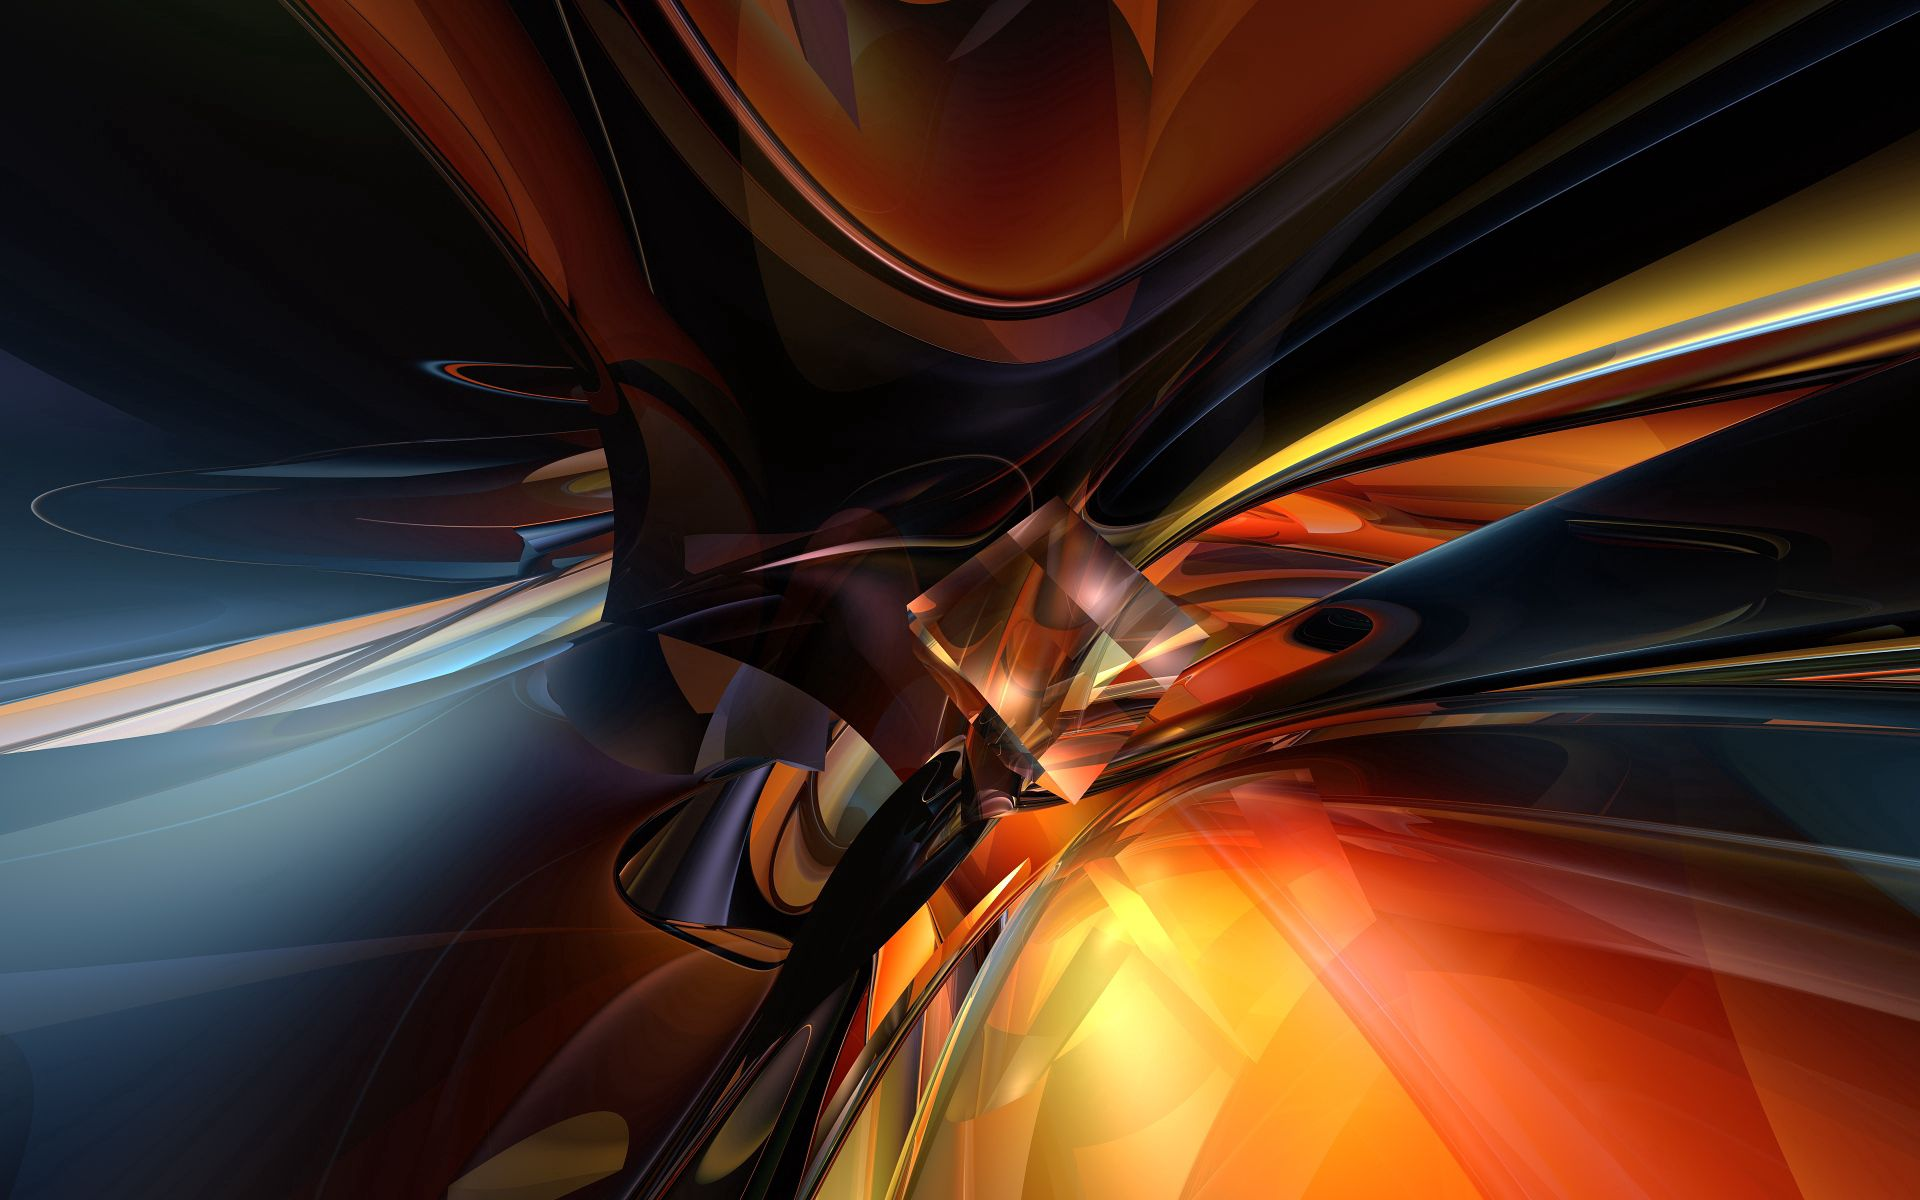 109171 download wallpaper Abstract, Immersion, Shine, Light, Stains, Spots screensavers and pictures for free